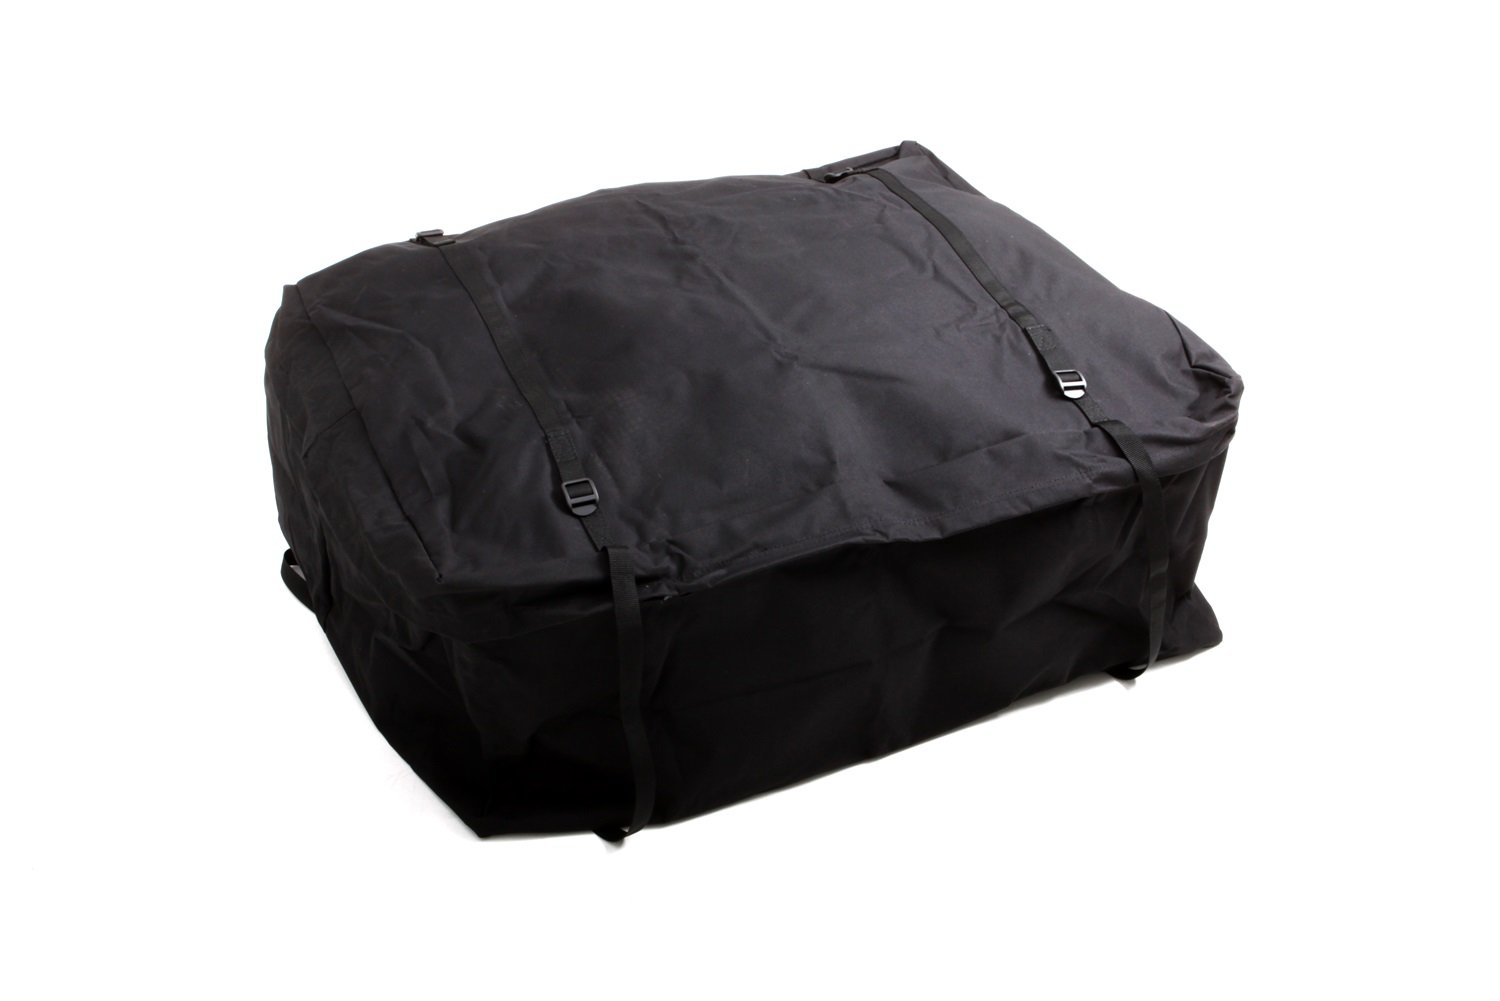 Lund 601016 Soft Pack Rooftop Bag